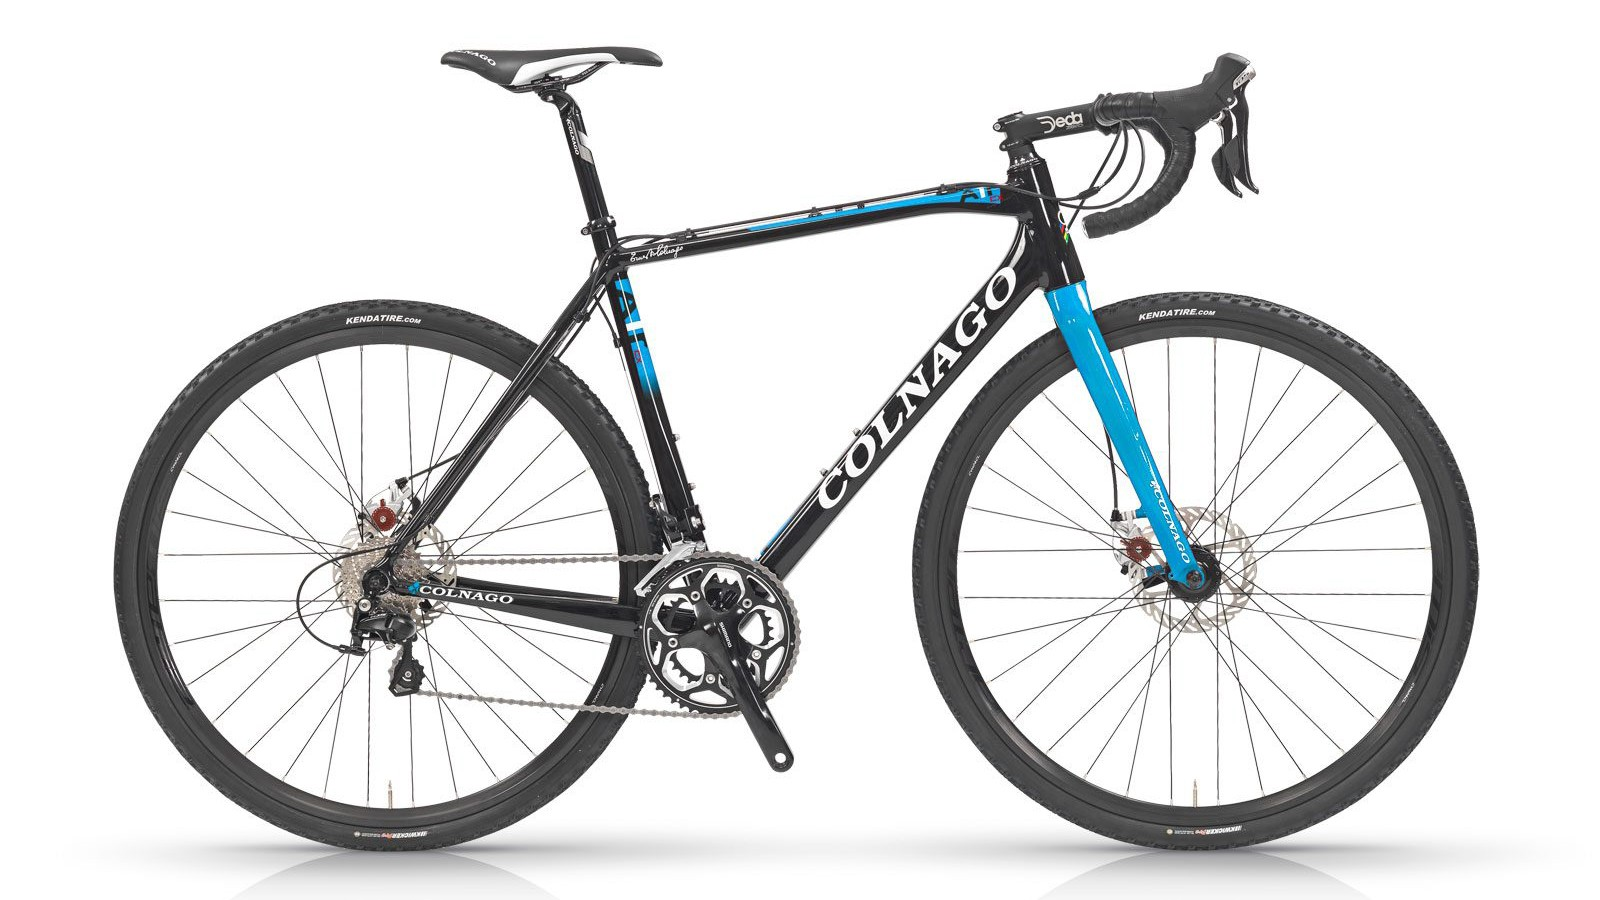 The A-1r CX is a disc-equipped alloy-framed CX racer